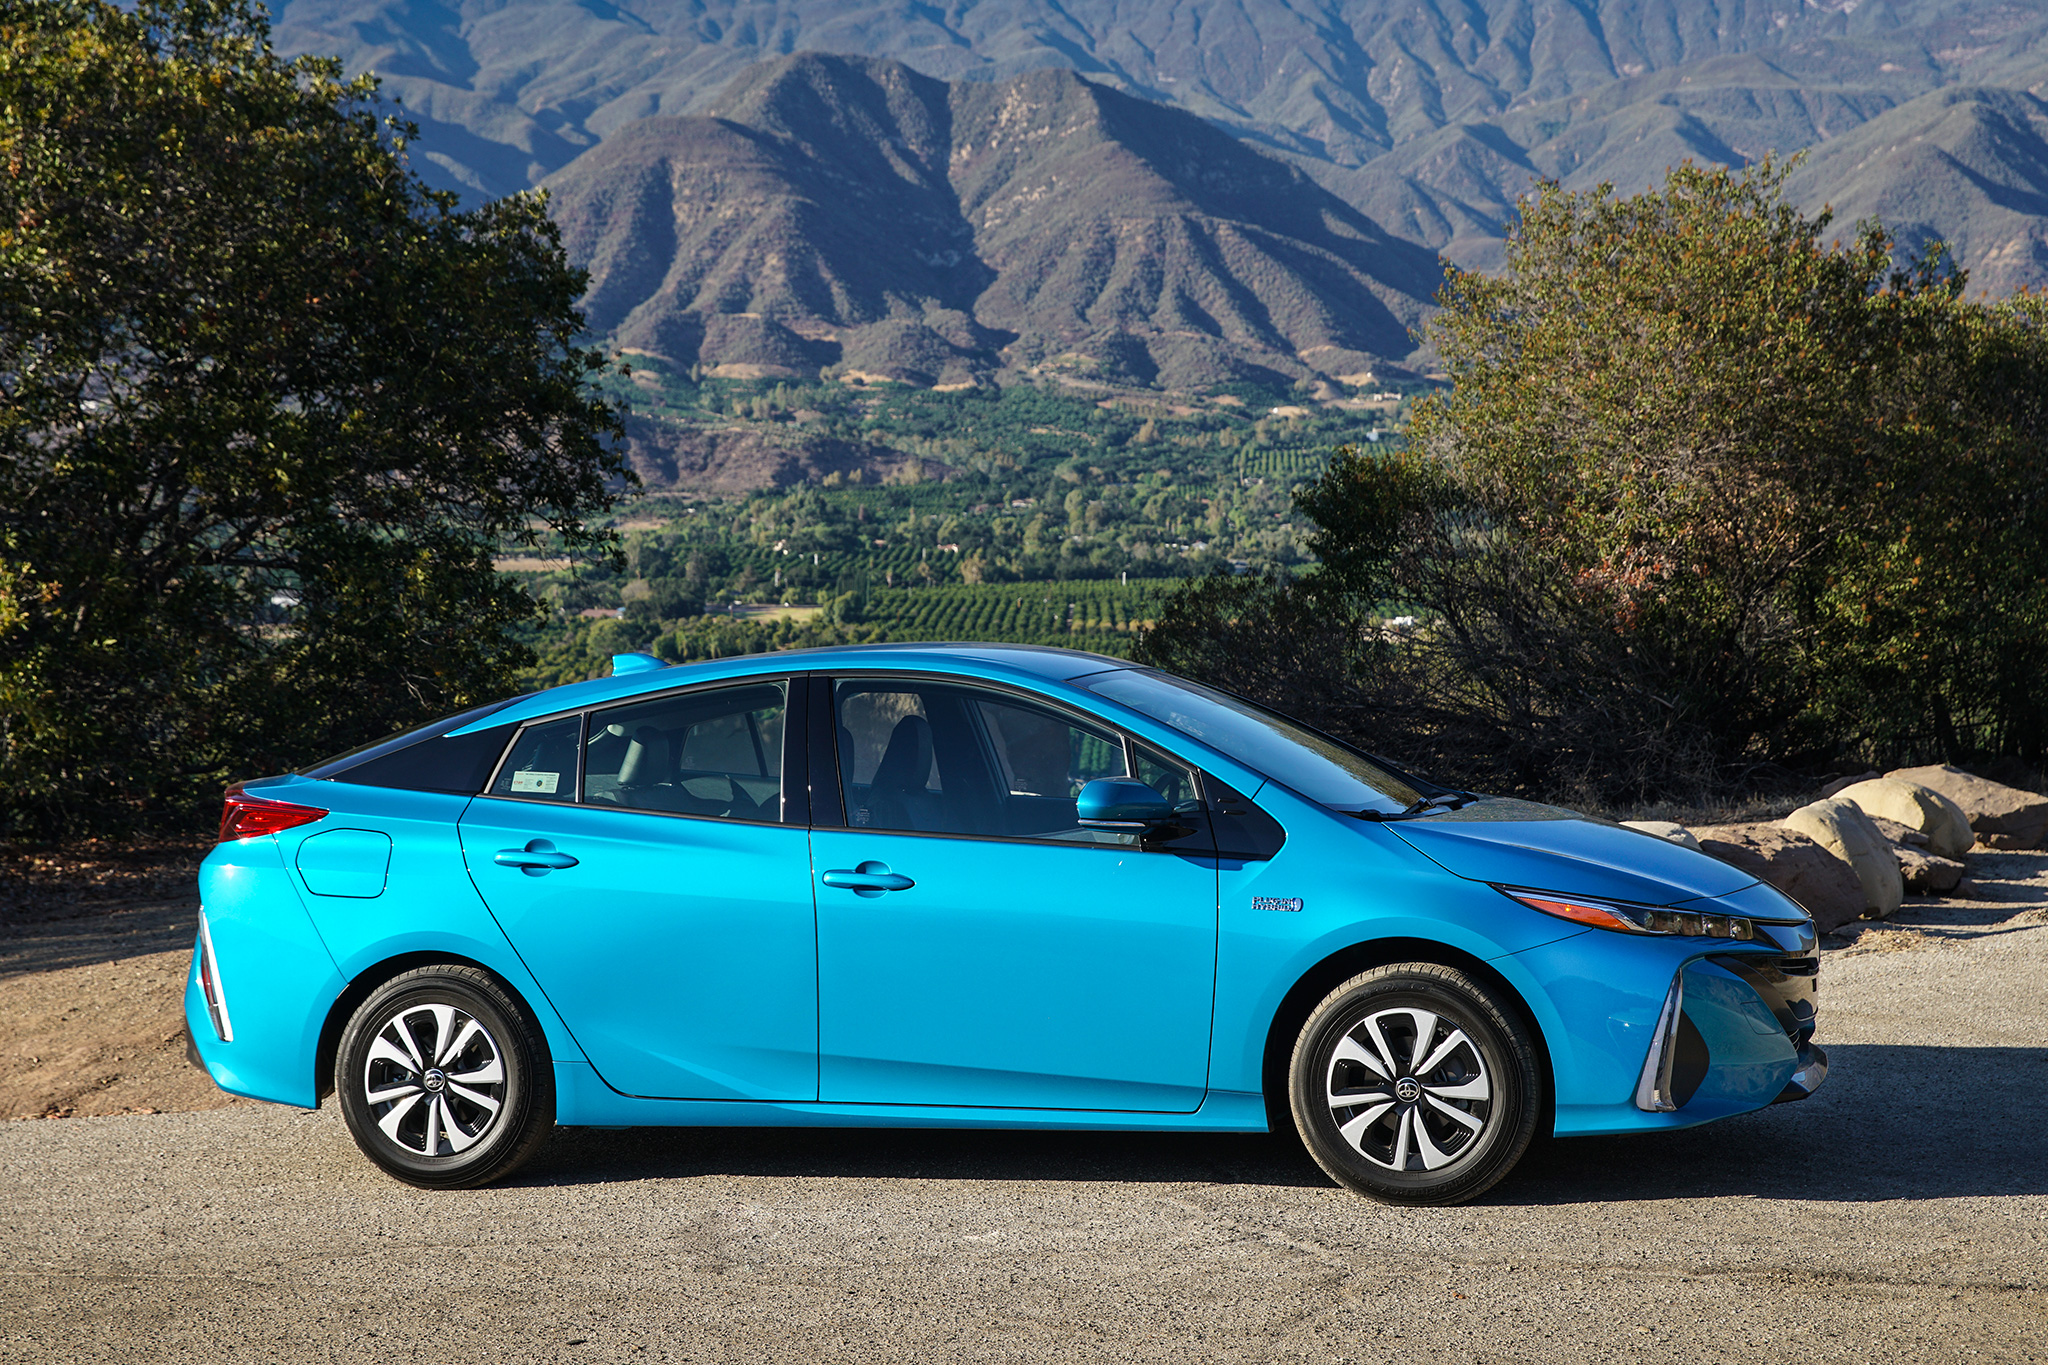 2017 Toyota Prius Kingsport Tn also Priusg2w2 besides Toyota Camry Hybrid Battery moreover Bmw 5 Series Car Battery Location additionally 2007 Prius Check Engine Light Codes 2. on toyota prius battery warranty